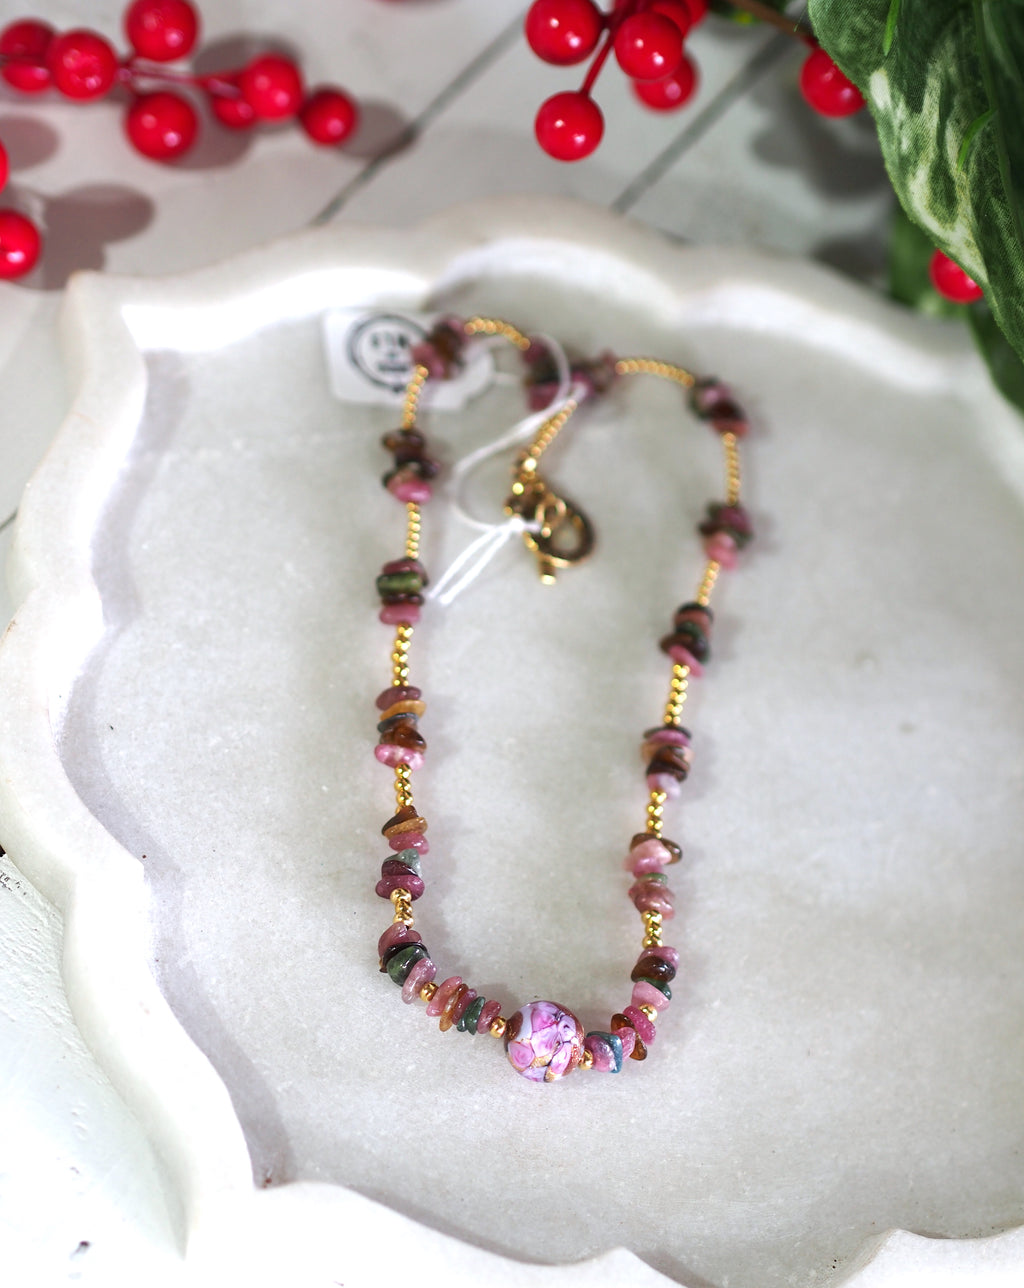 Vintage Focal Bead + Tourmaline Necklace SKU: MS_11N